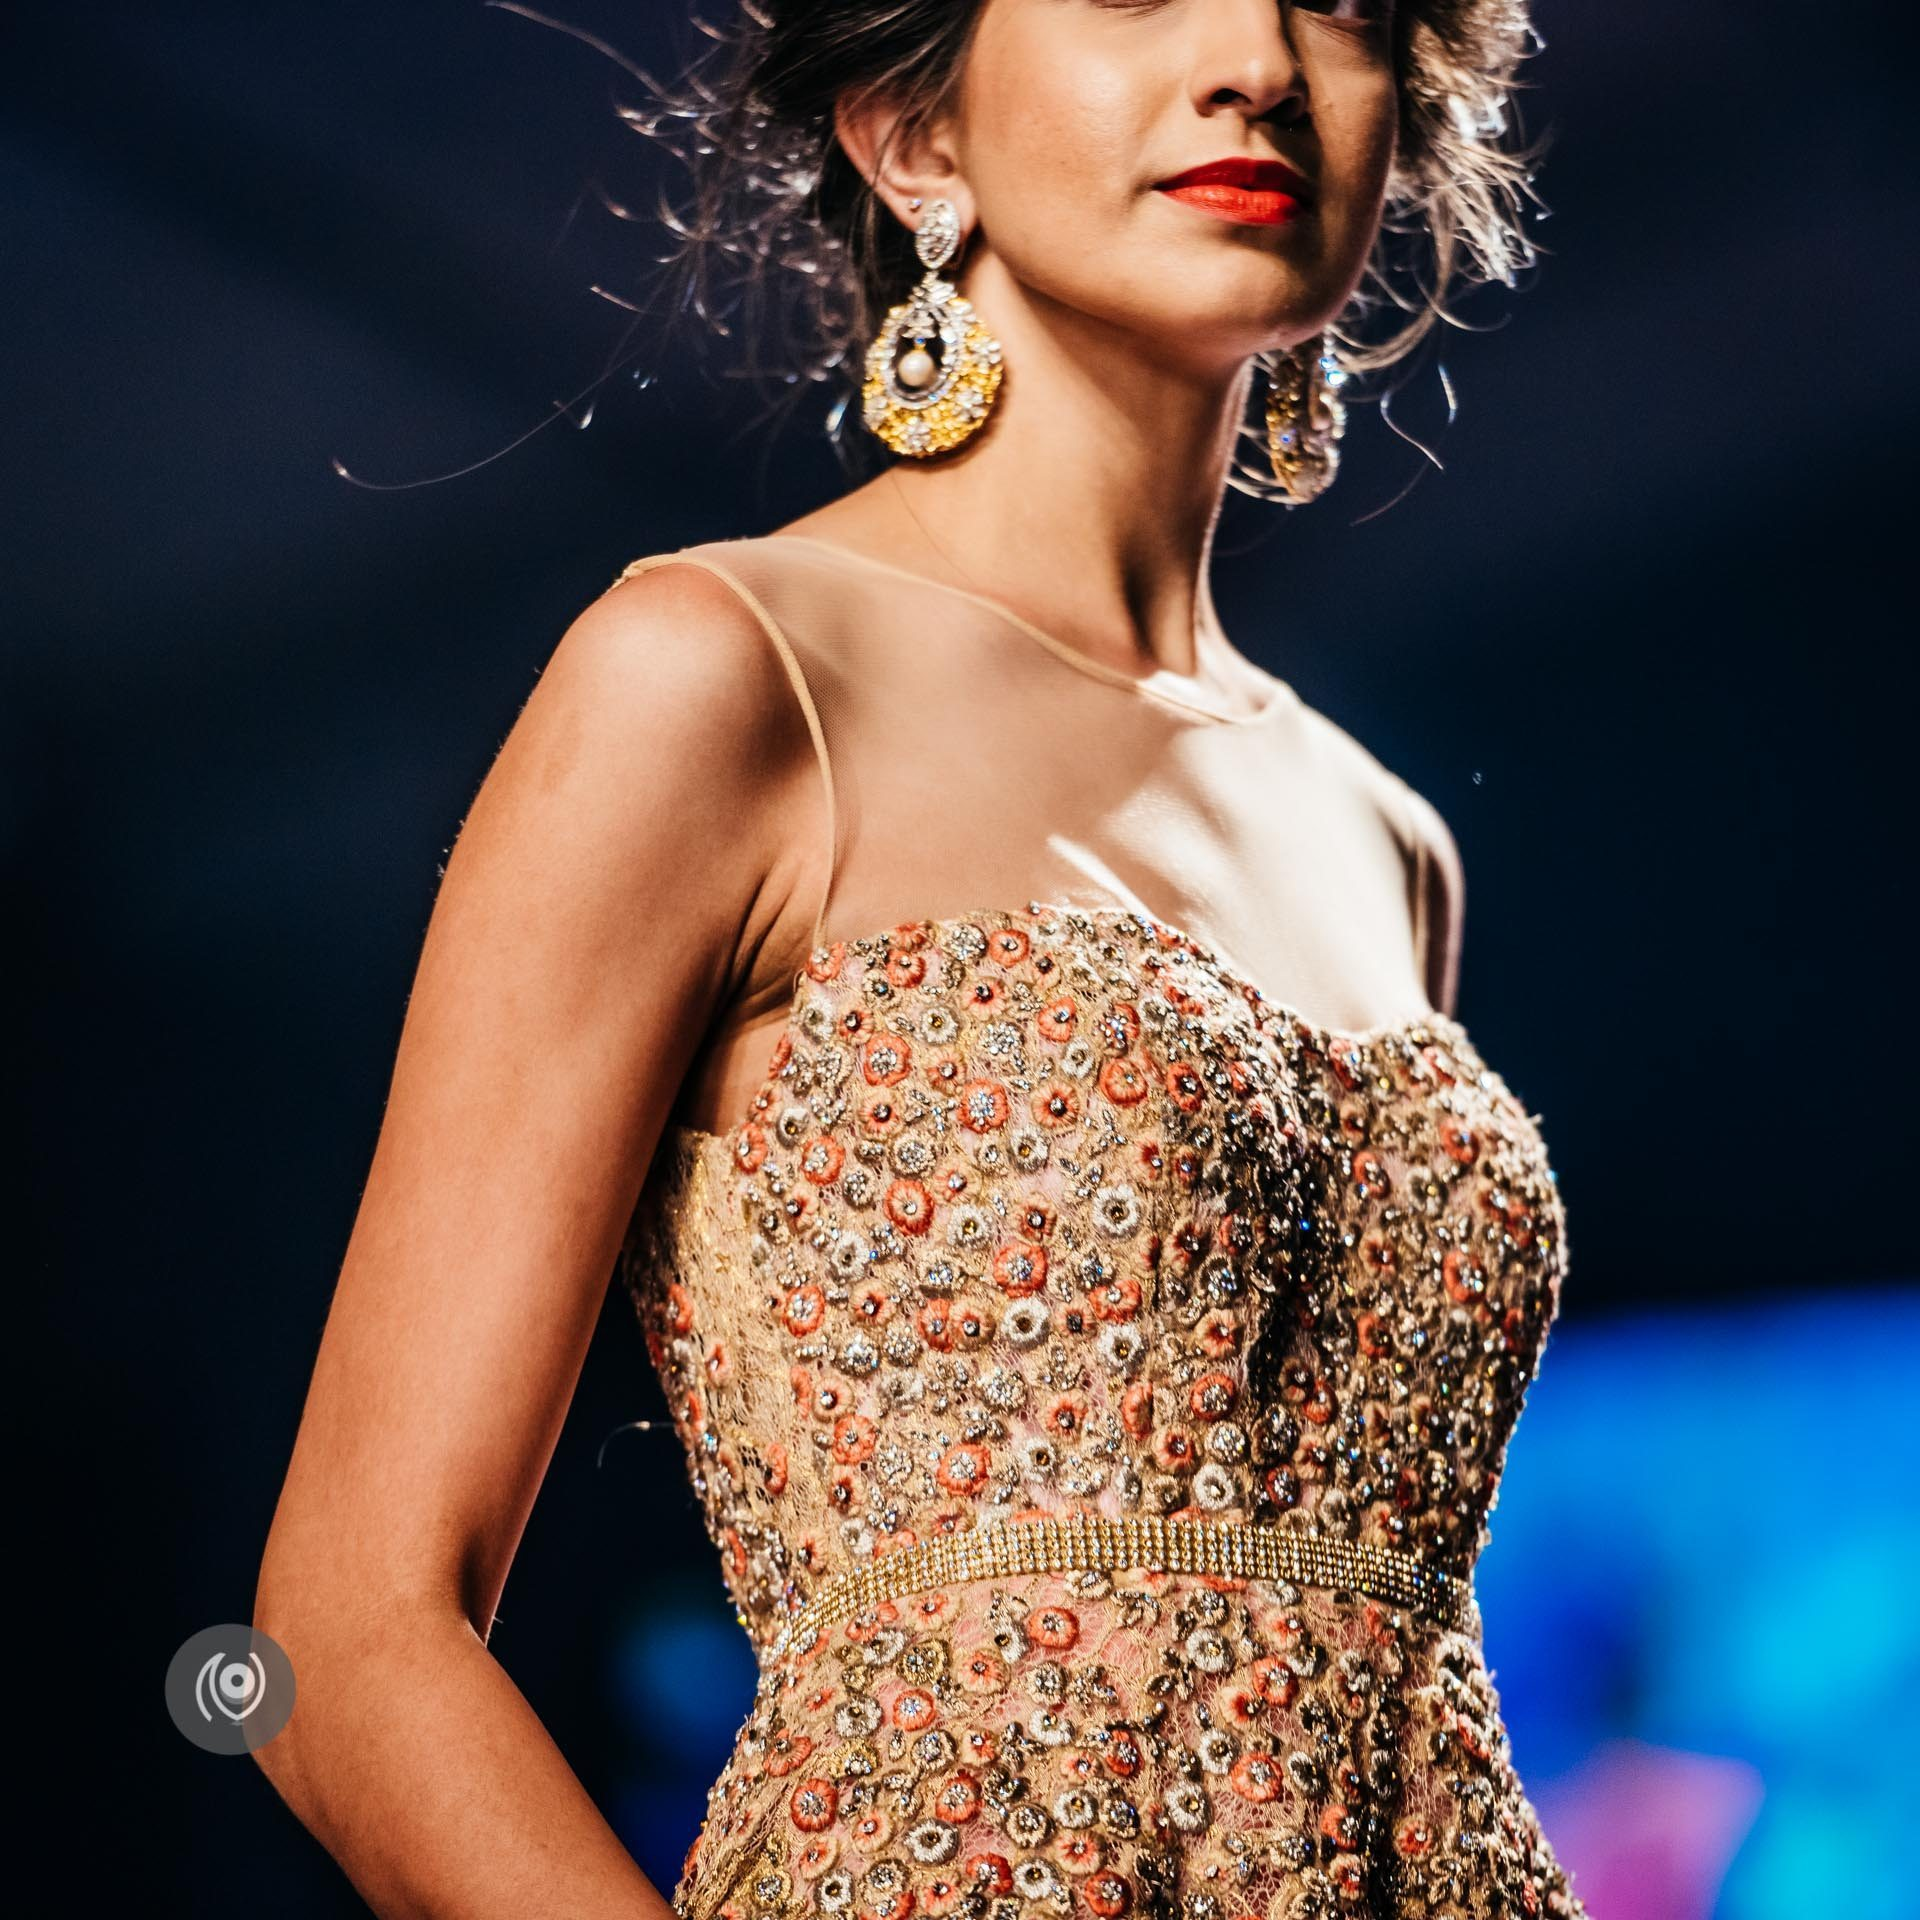 #SwarovskiCrystals Jyotsna Tiwari, BMW India Bridal Fashion Week, #BMWIBFW, Naina.co Luxury & Lifestyle, Photographer Storyteller, Blogger #SwarovskiCouture